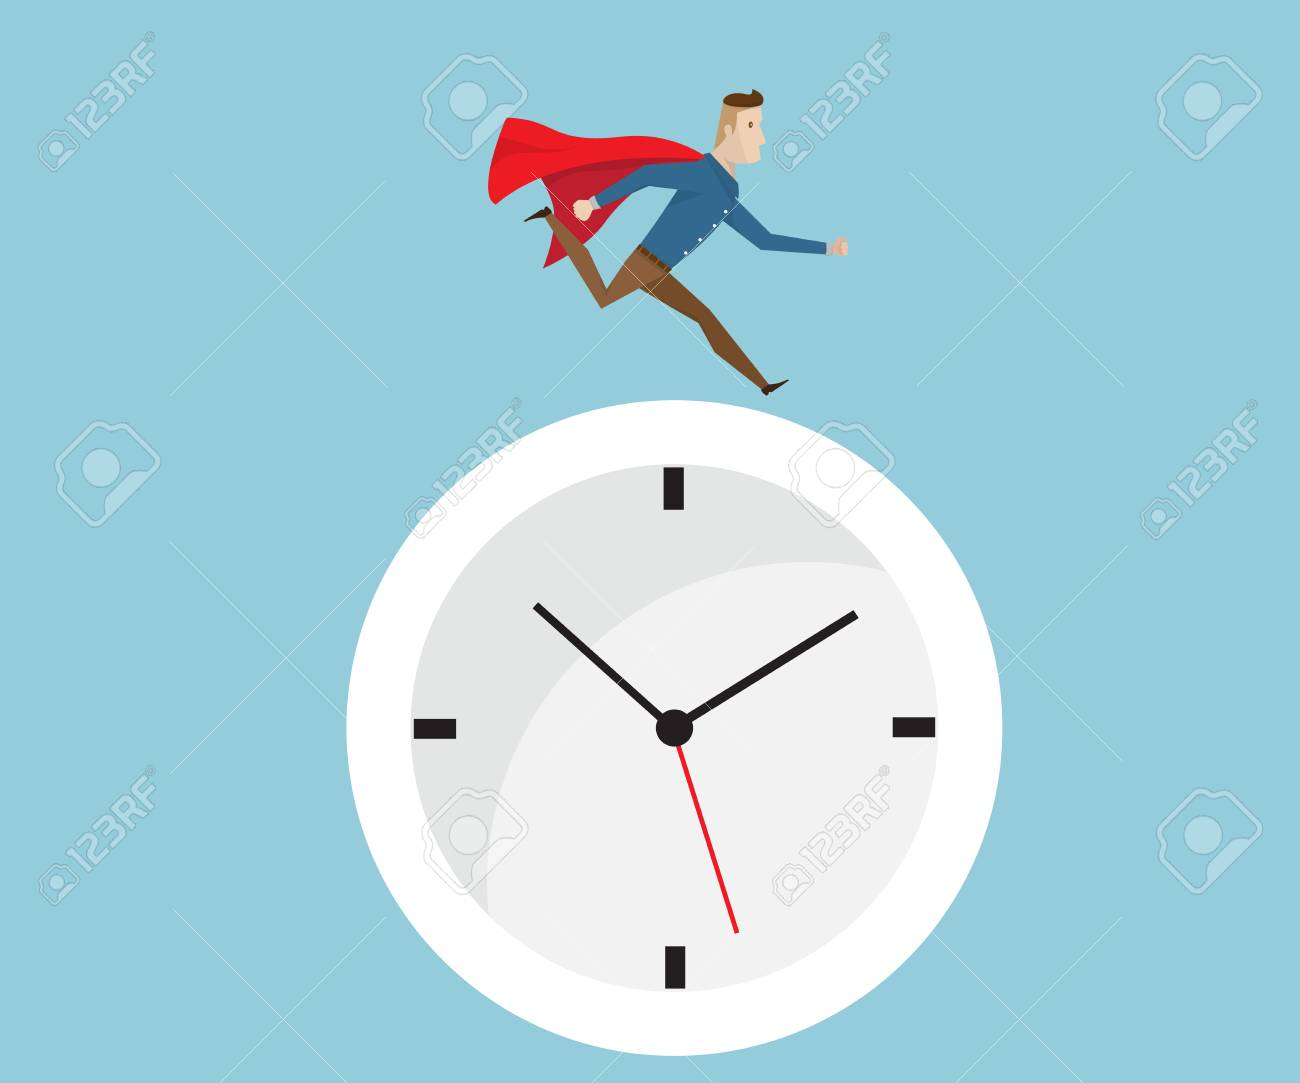 Businessman With Red Cape Running On Clock Time Management Concept Royalty Free Cliparts Vectors And Stock Illustration Image 82073455